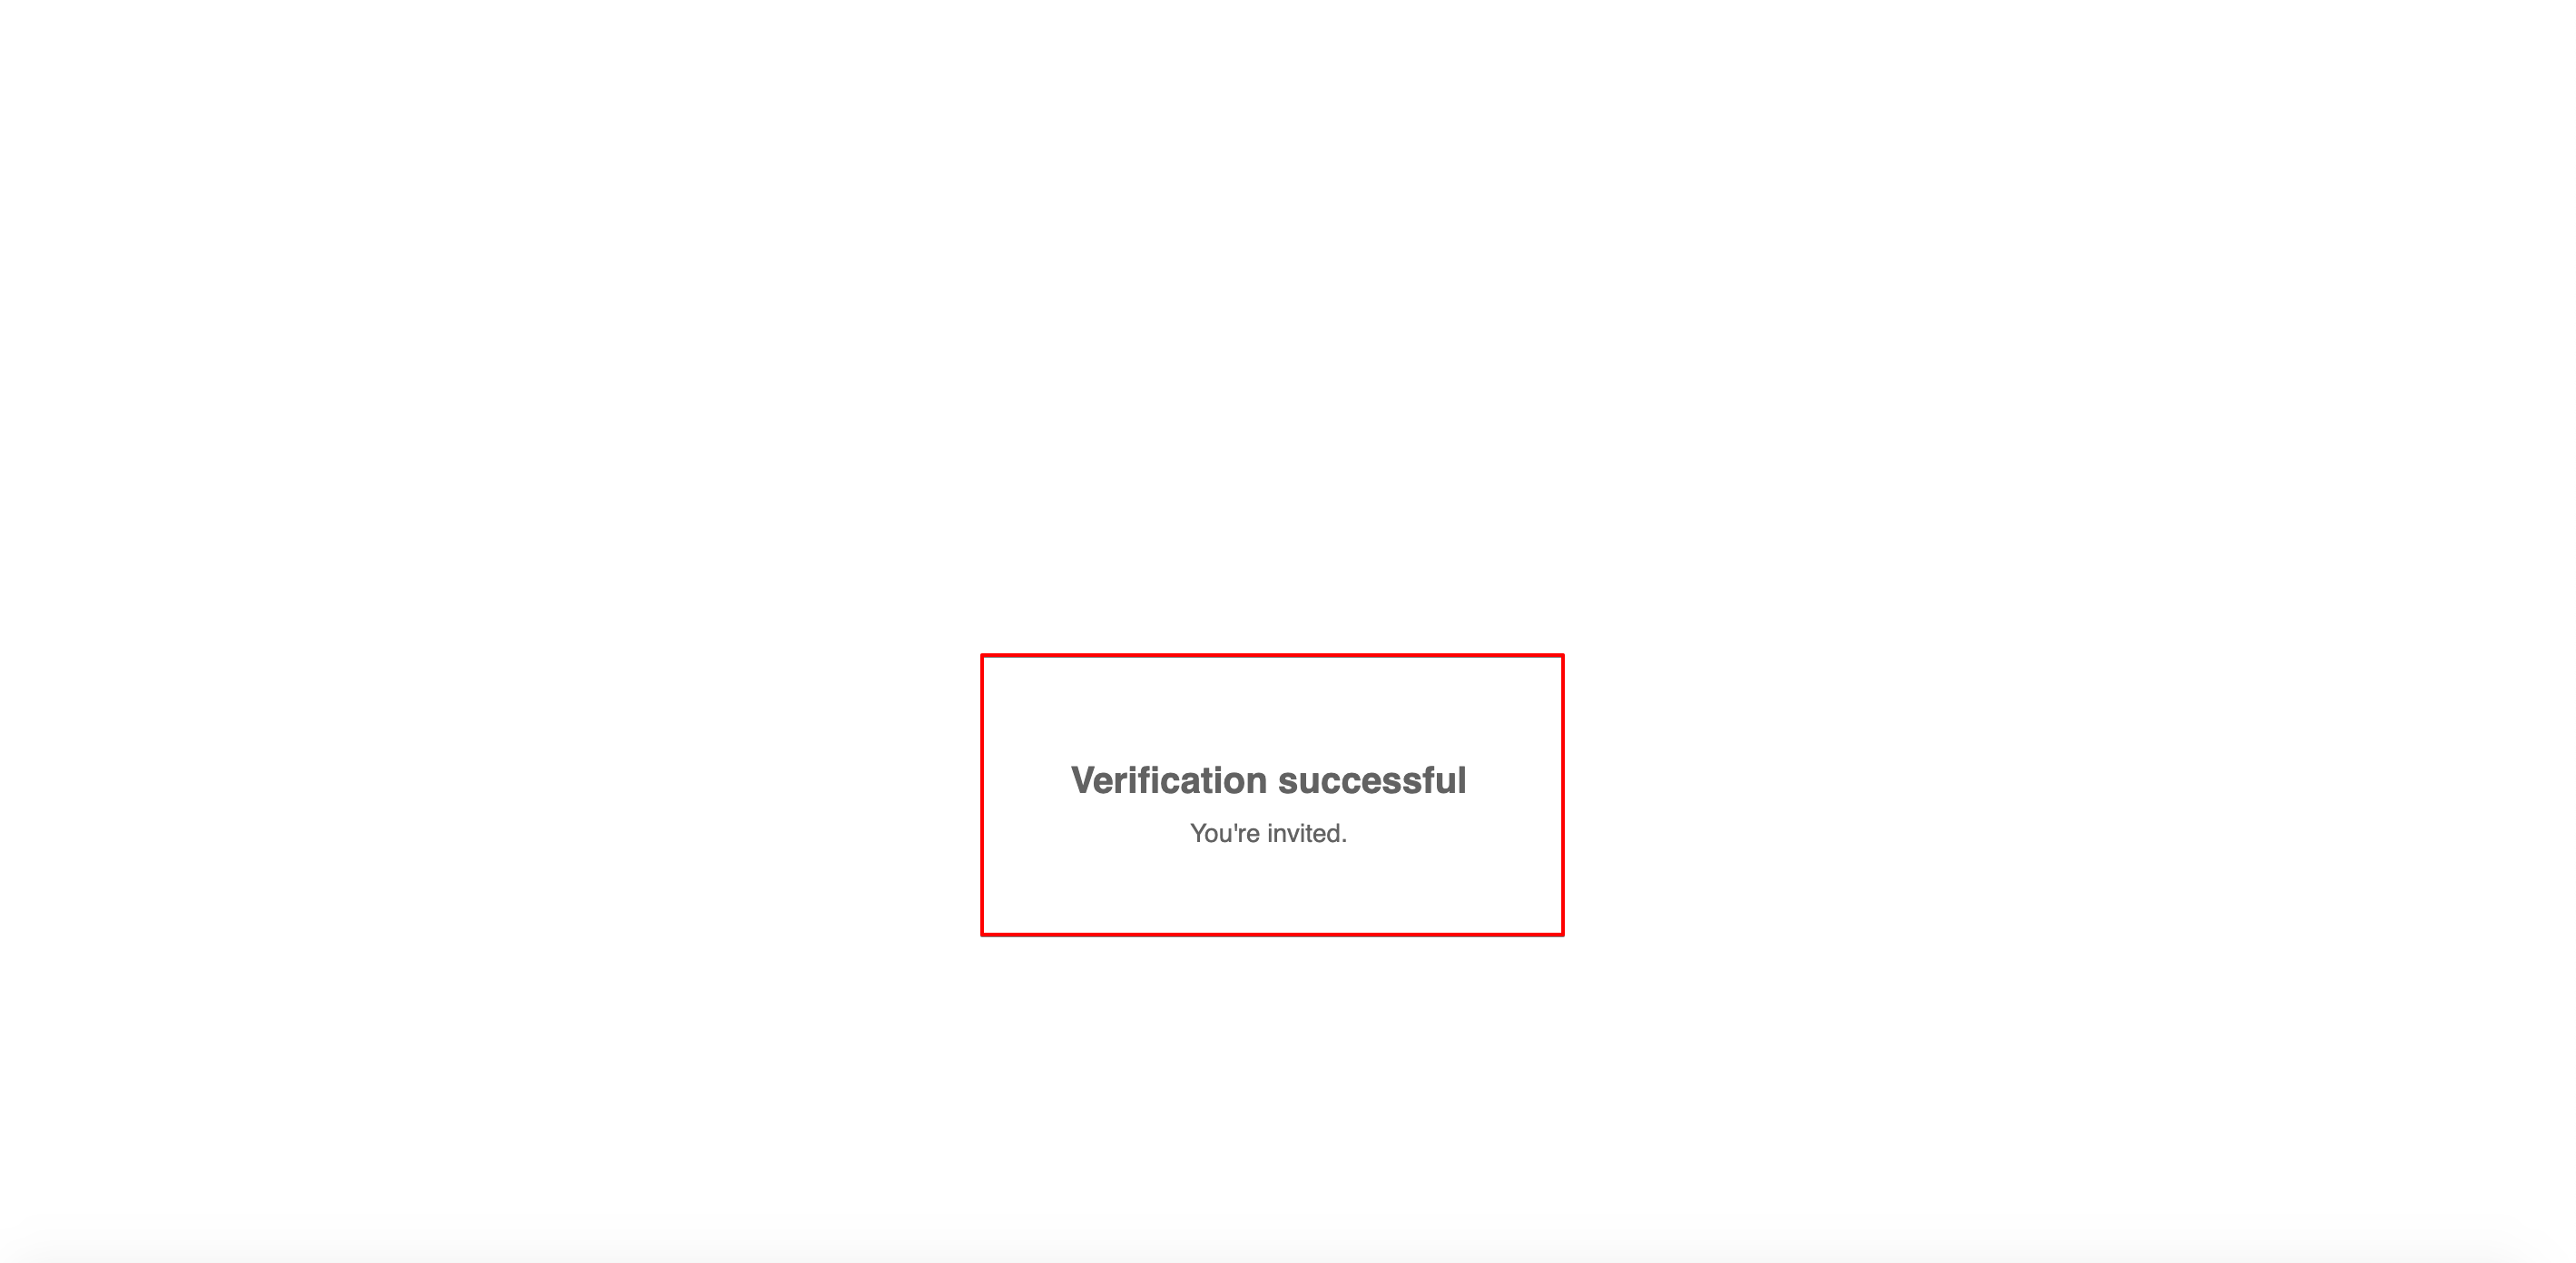 Verification sucessful